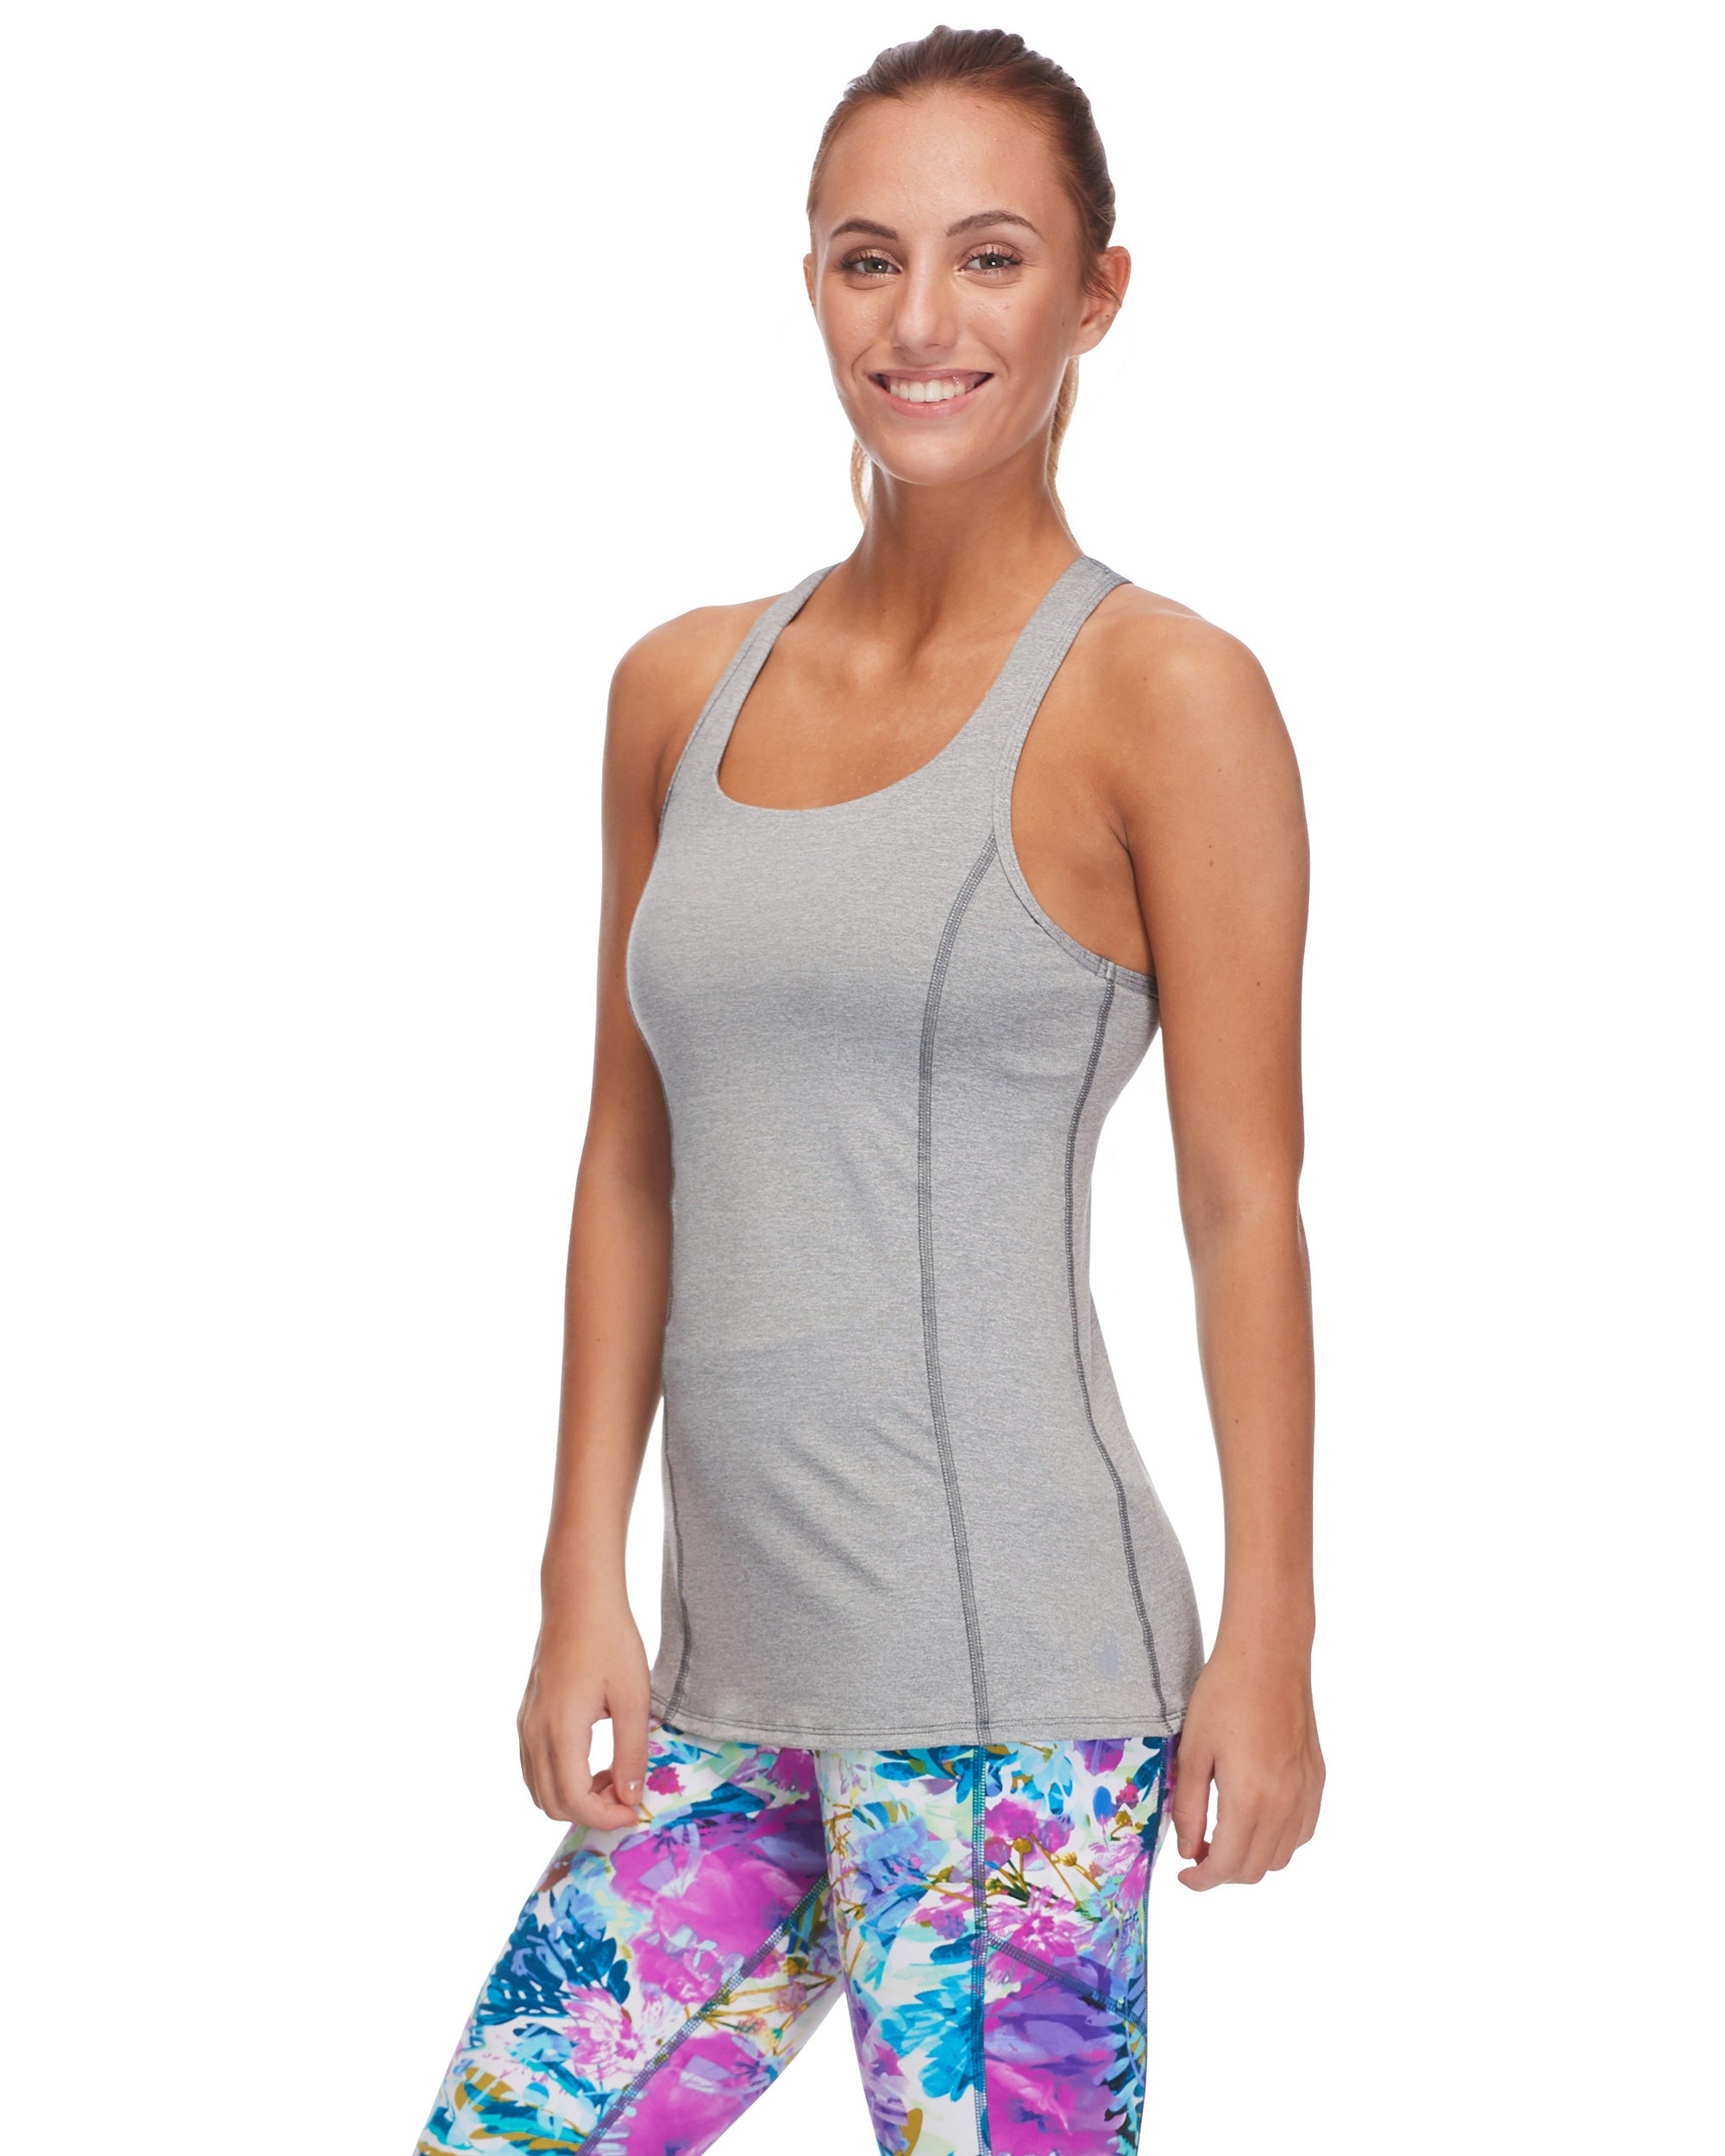 Buran Racerback Tank Top - Light Grey Heather